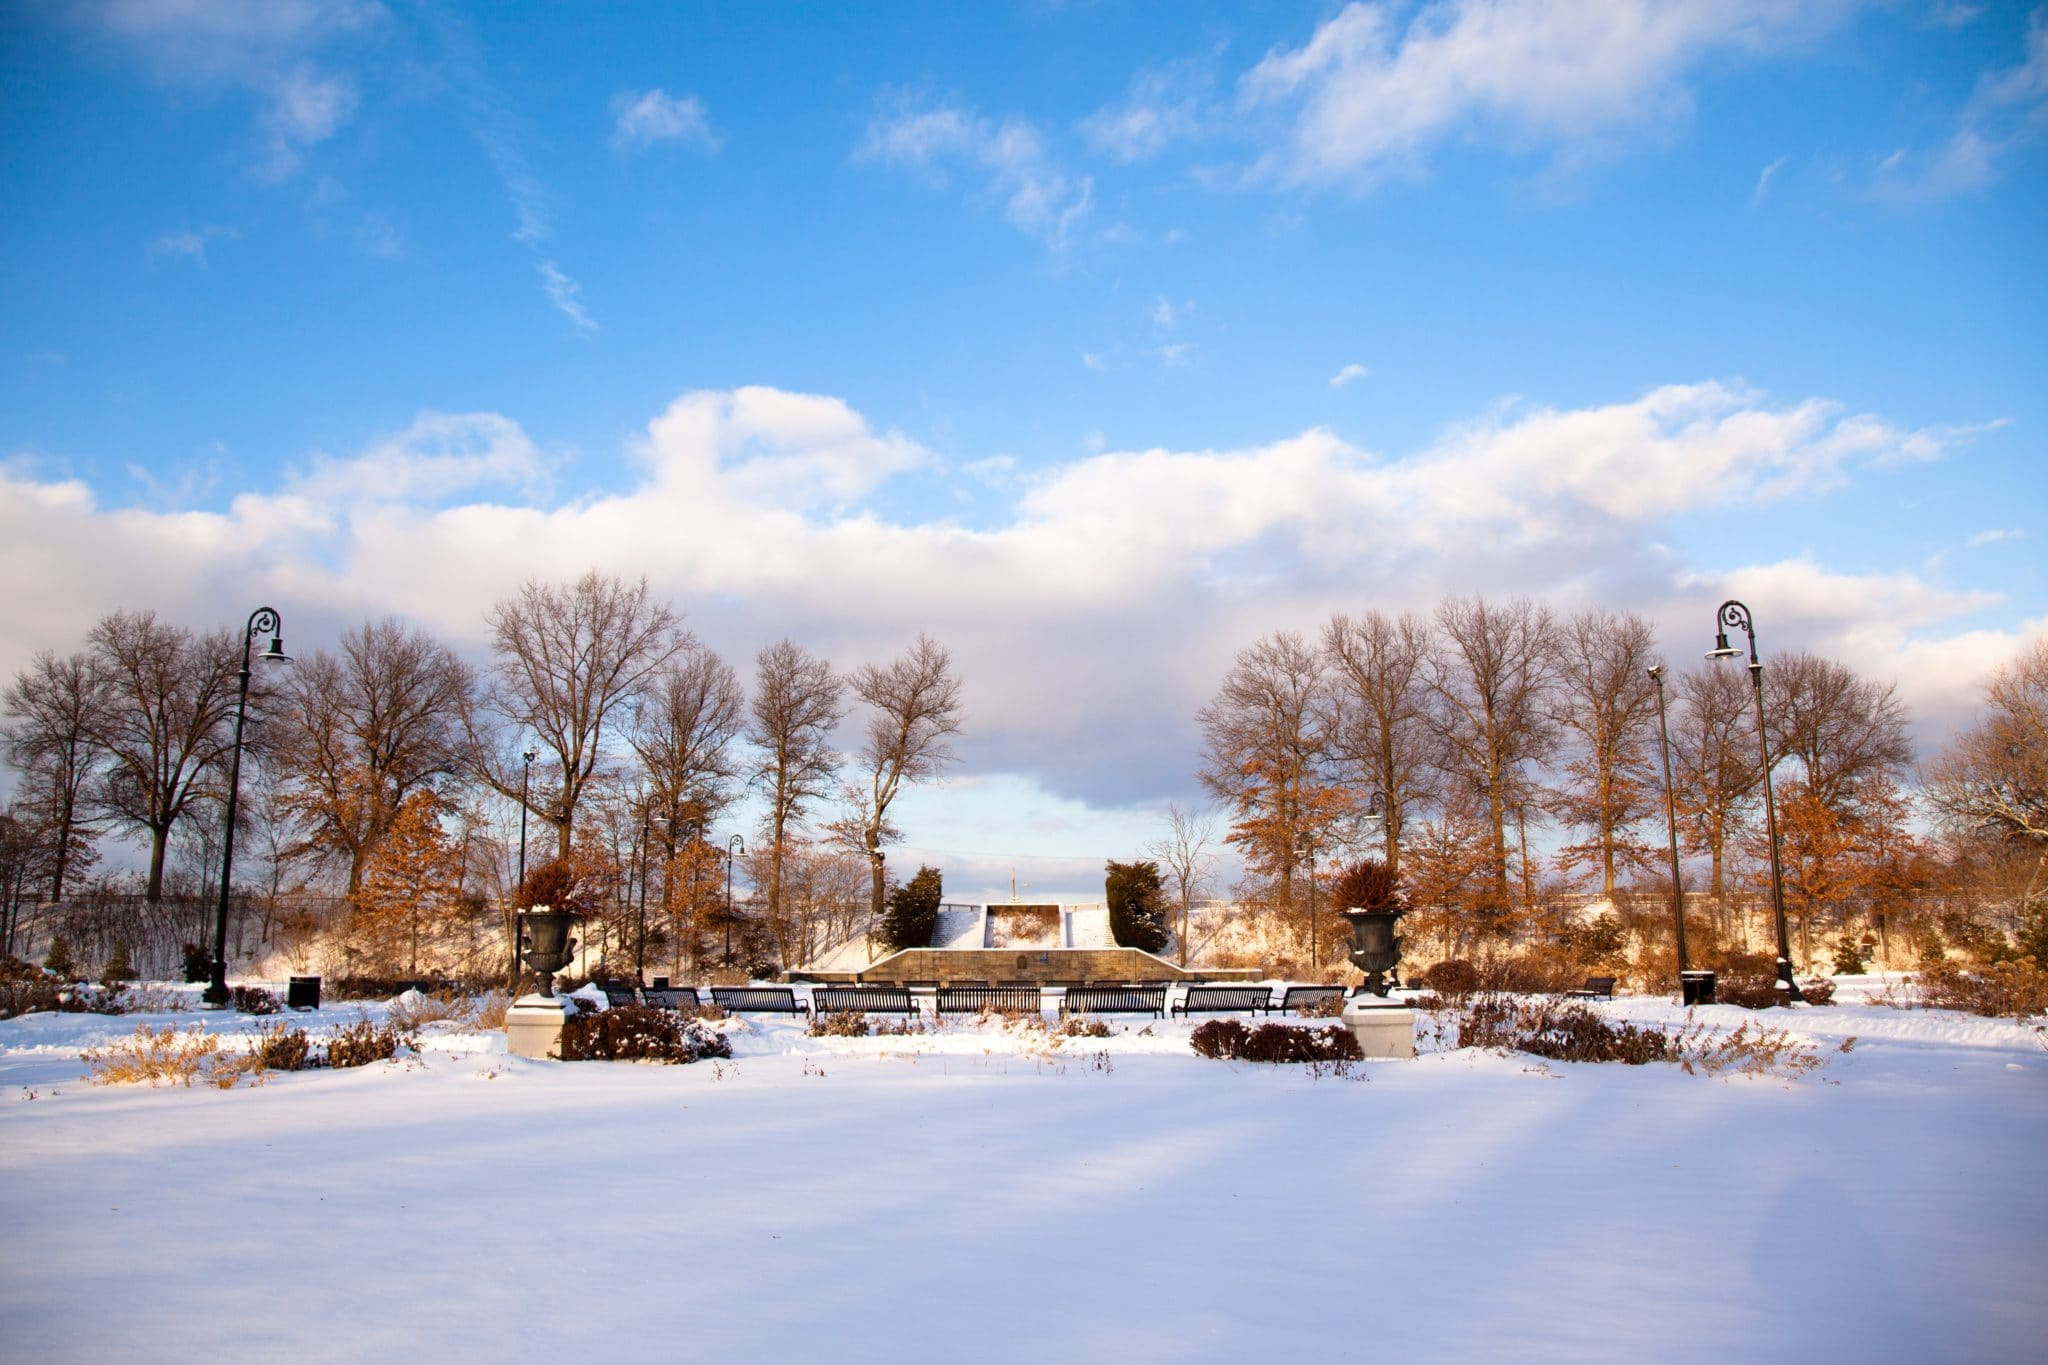 An image of Highland Park covered in snow.